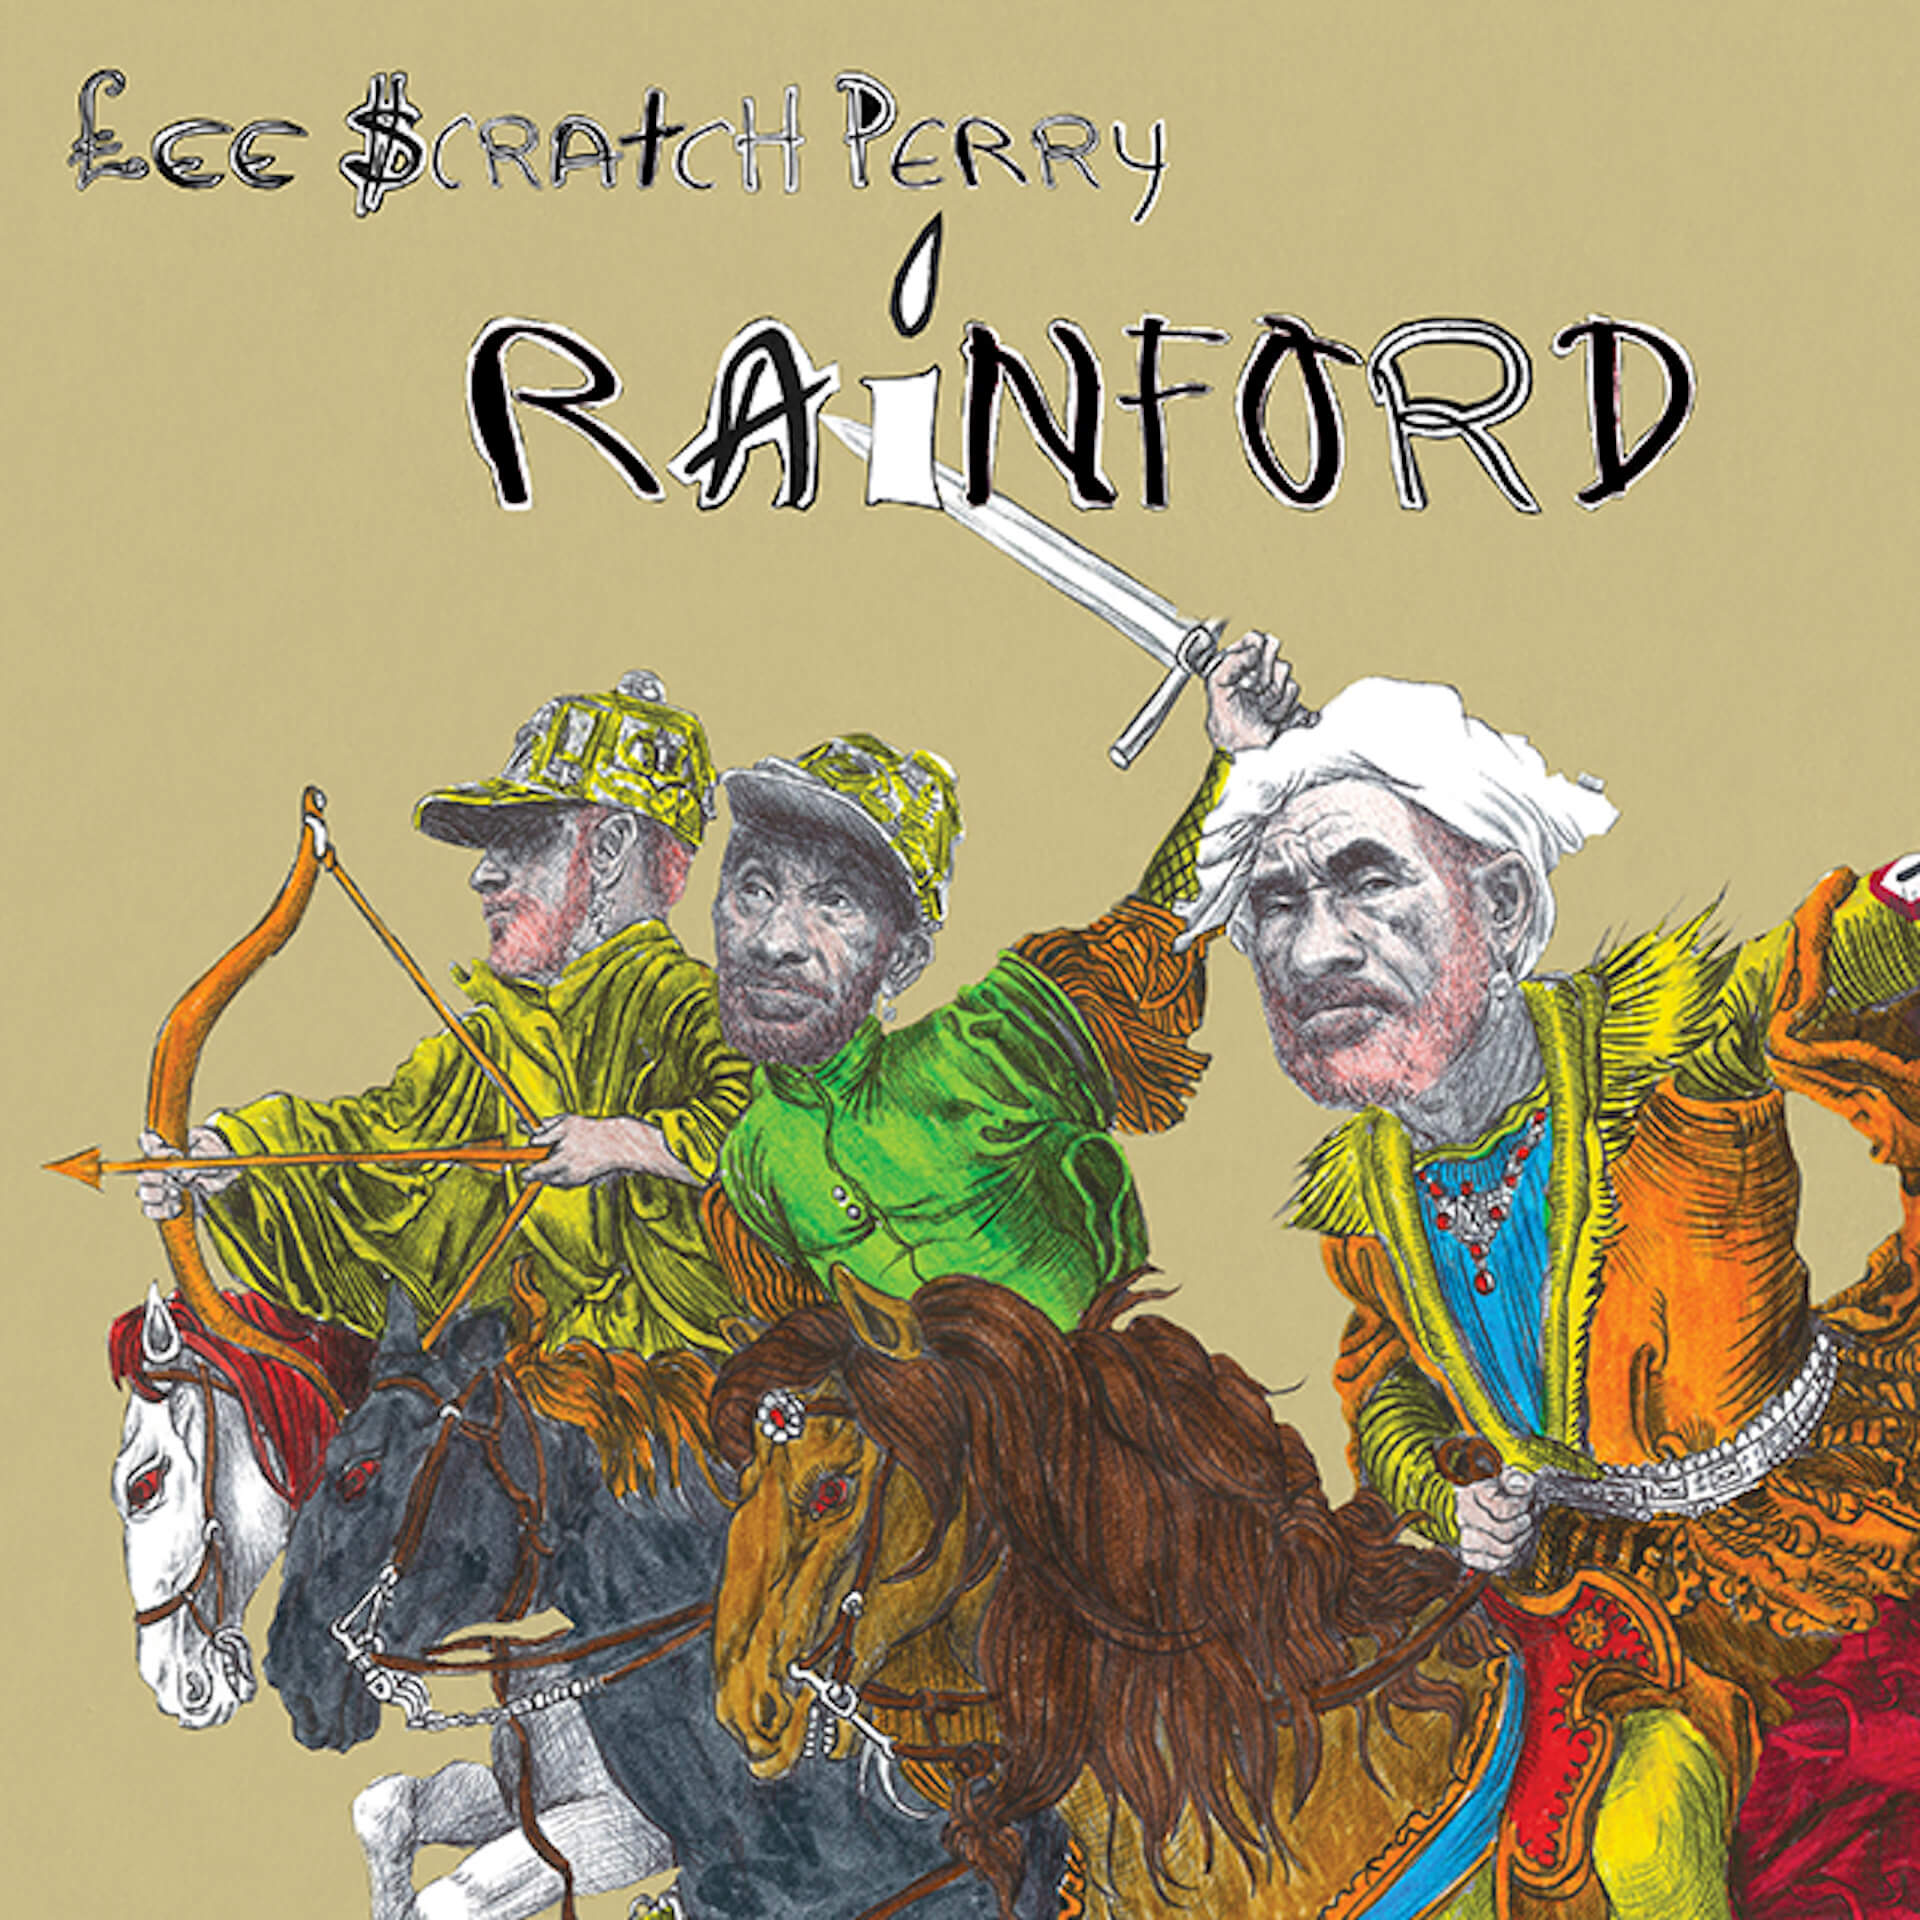 """Lee """"Scratch"""" Perry x Brain Eno x Adrian Sherwood、3人のコラボ作となる新曲「Here Come The Warm Dreads」のMVが解禁 music_191219_leescratchperry3"""